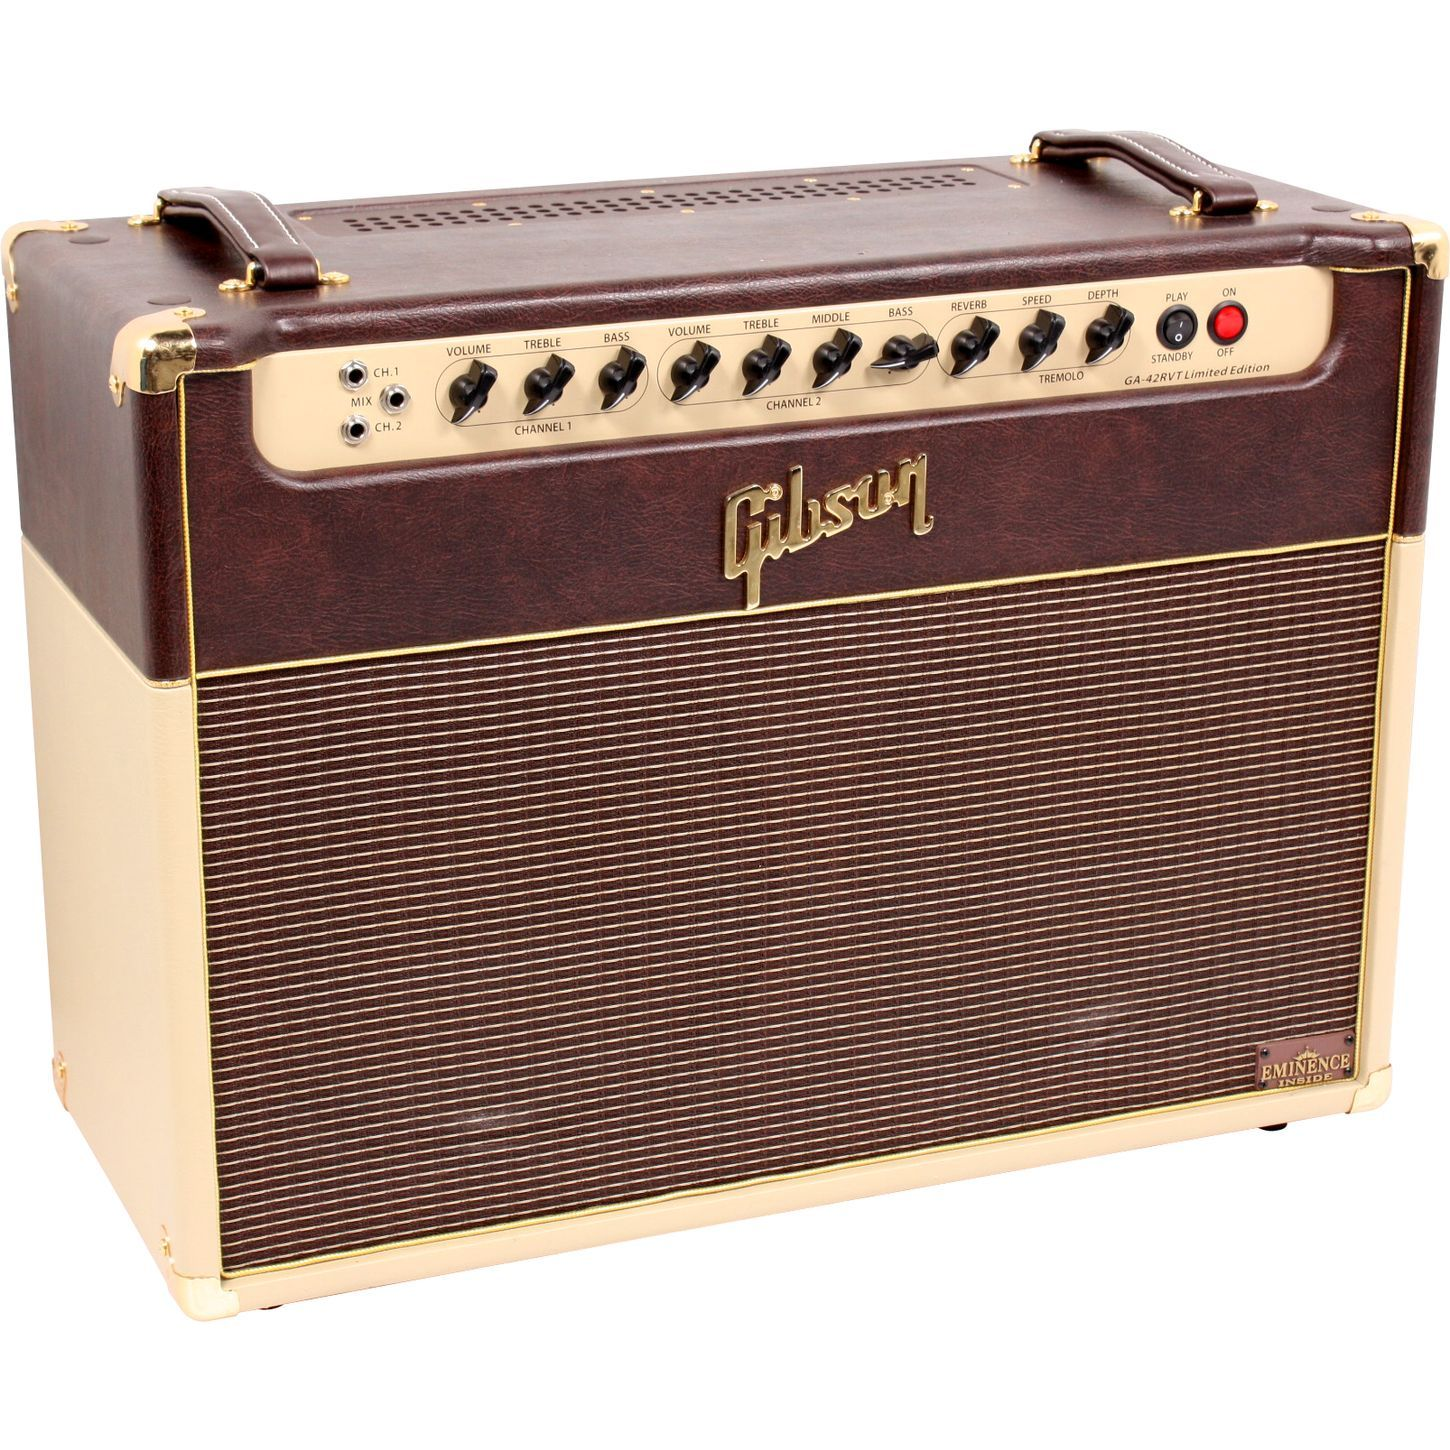 vintage melody amplifier gibson ga42rvt 30w 2x12 tube guitar combo amp musician 39 s friend. Black Bedroom Furniture Sets. Home Design Ideas